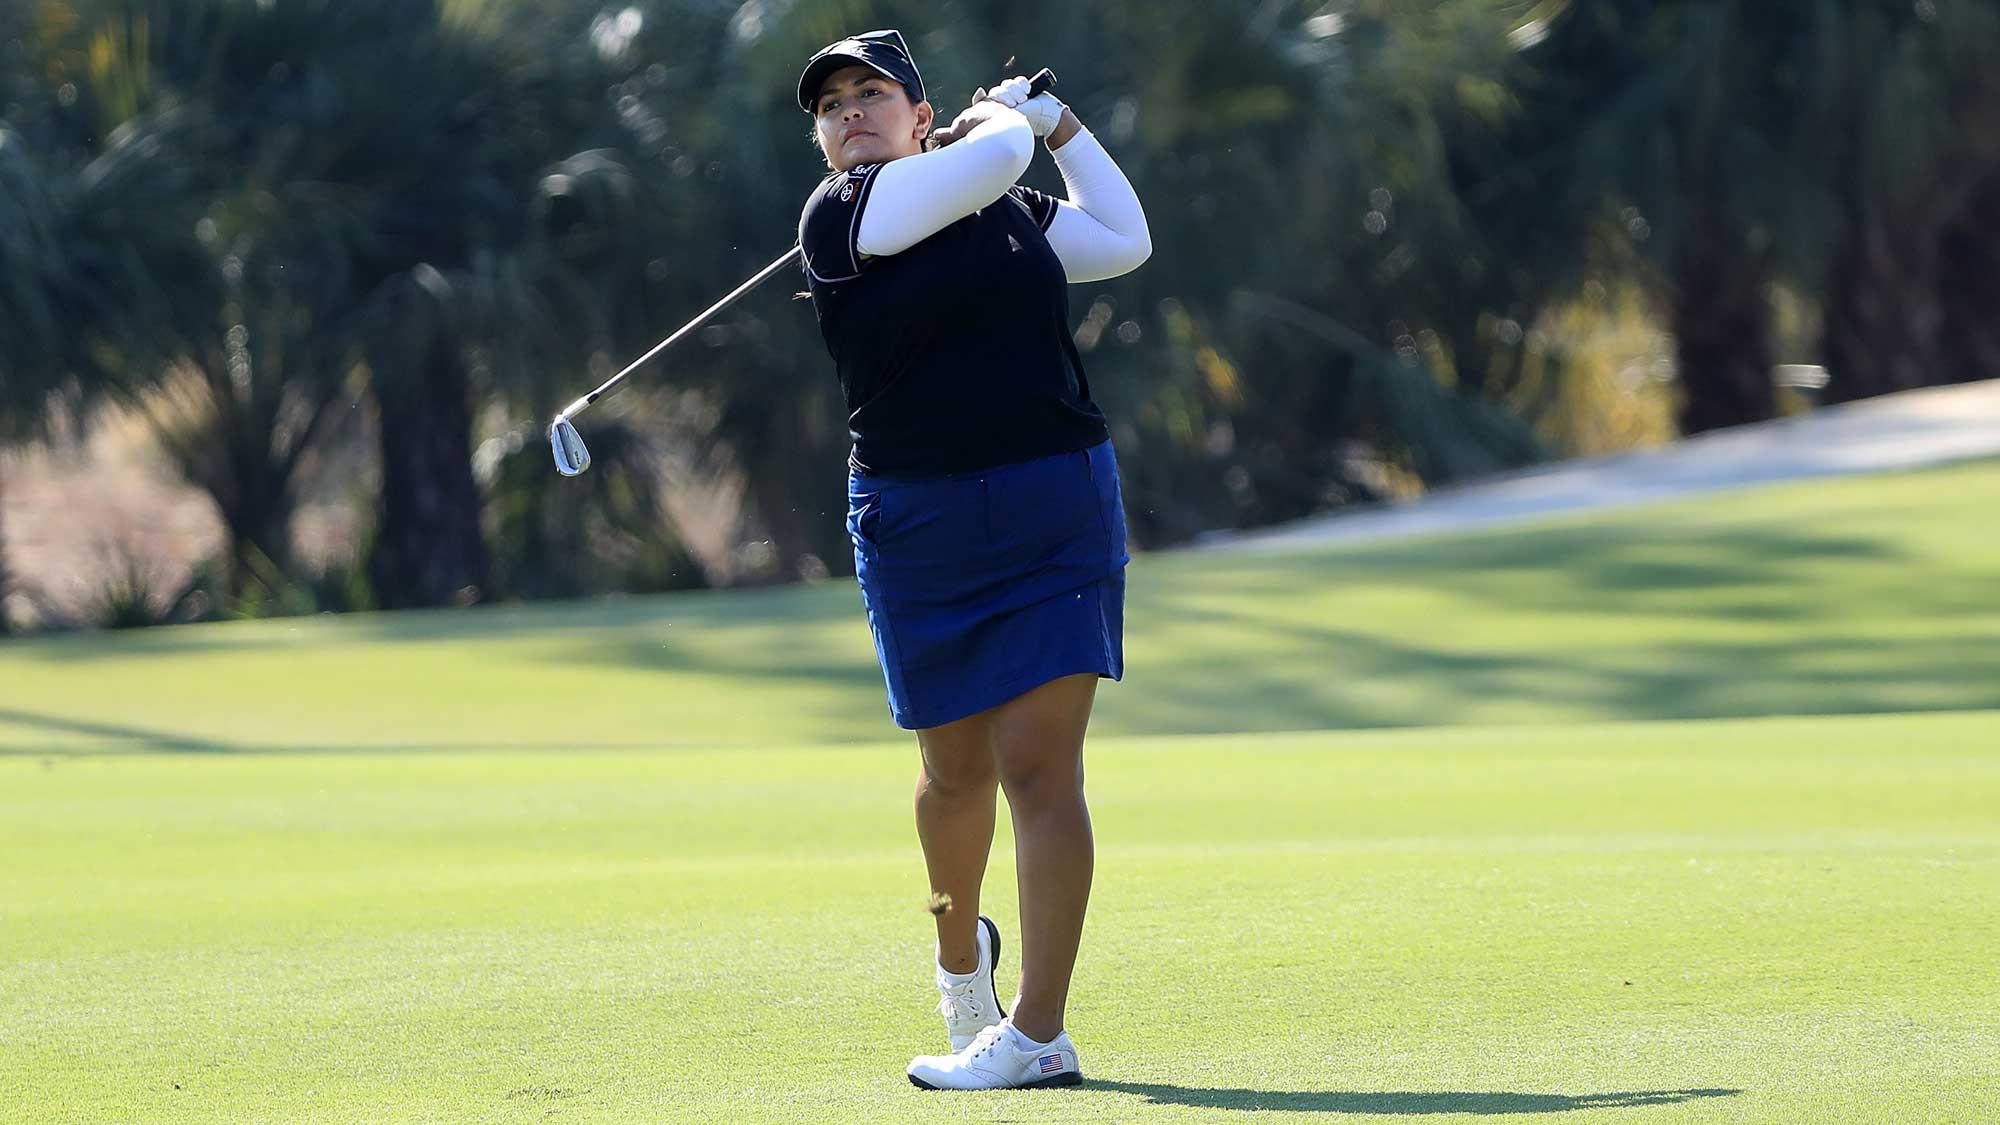 Lizette Salas plays her shot on the second hole during the third round of the CME Group Tour Championship